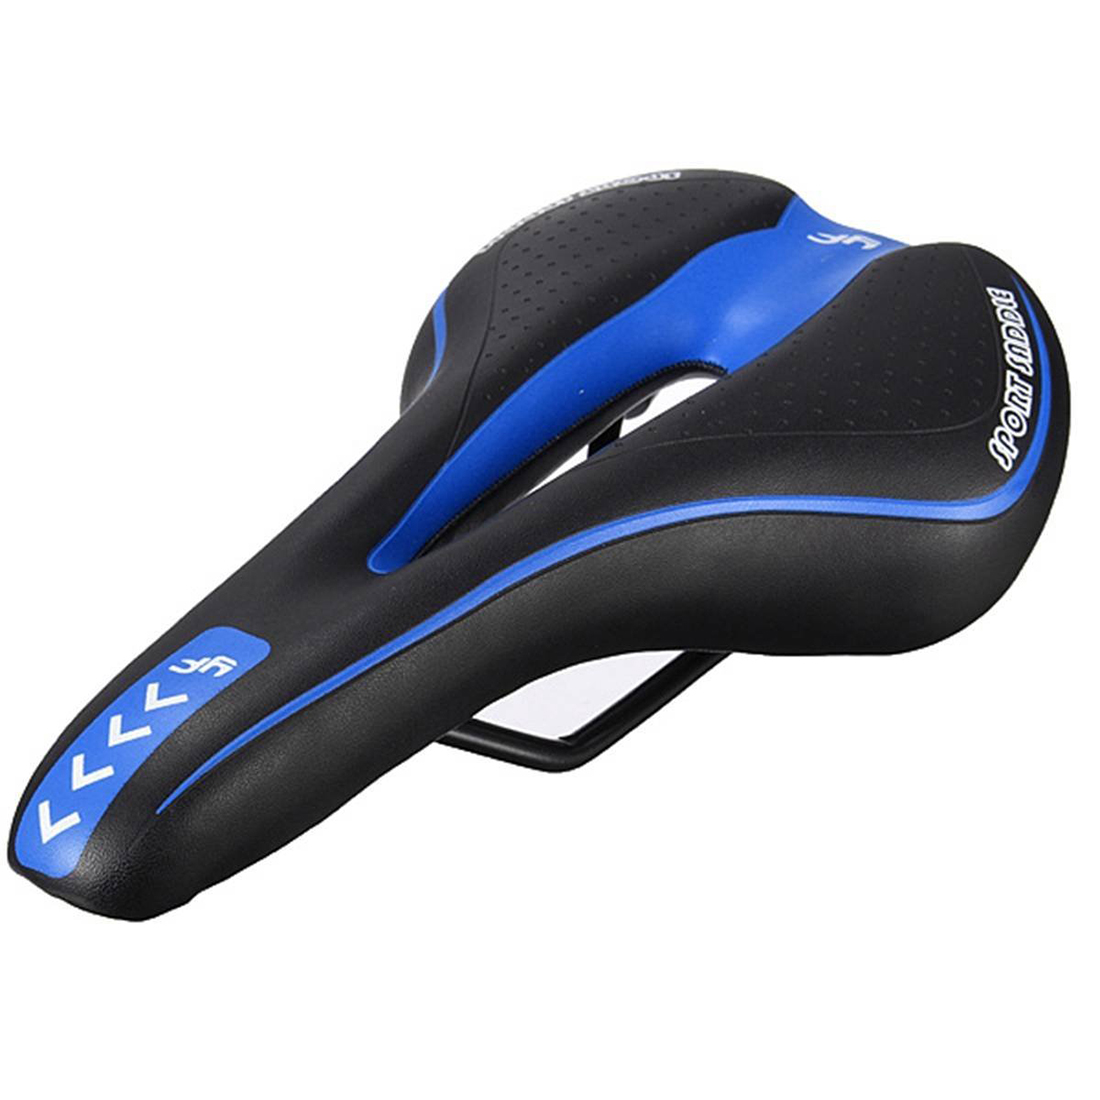 YAFEE Bicycle saddle Bicycle Seat Gel Mount Bike Saddle Bicycle Racing Bicycle Saddle Black and Blue цена